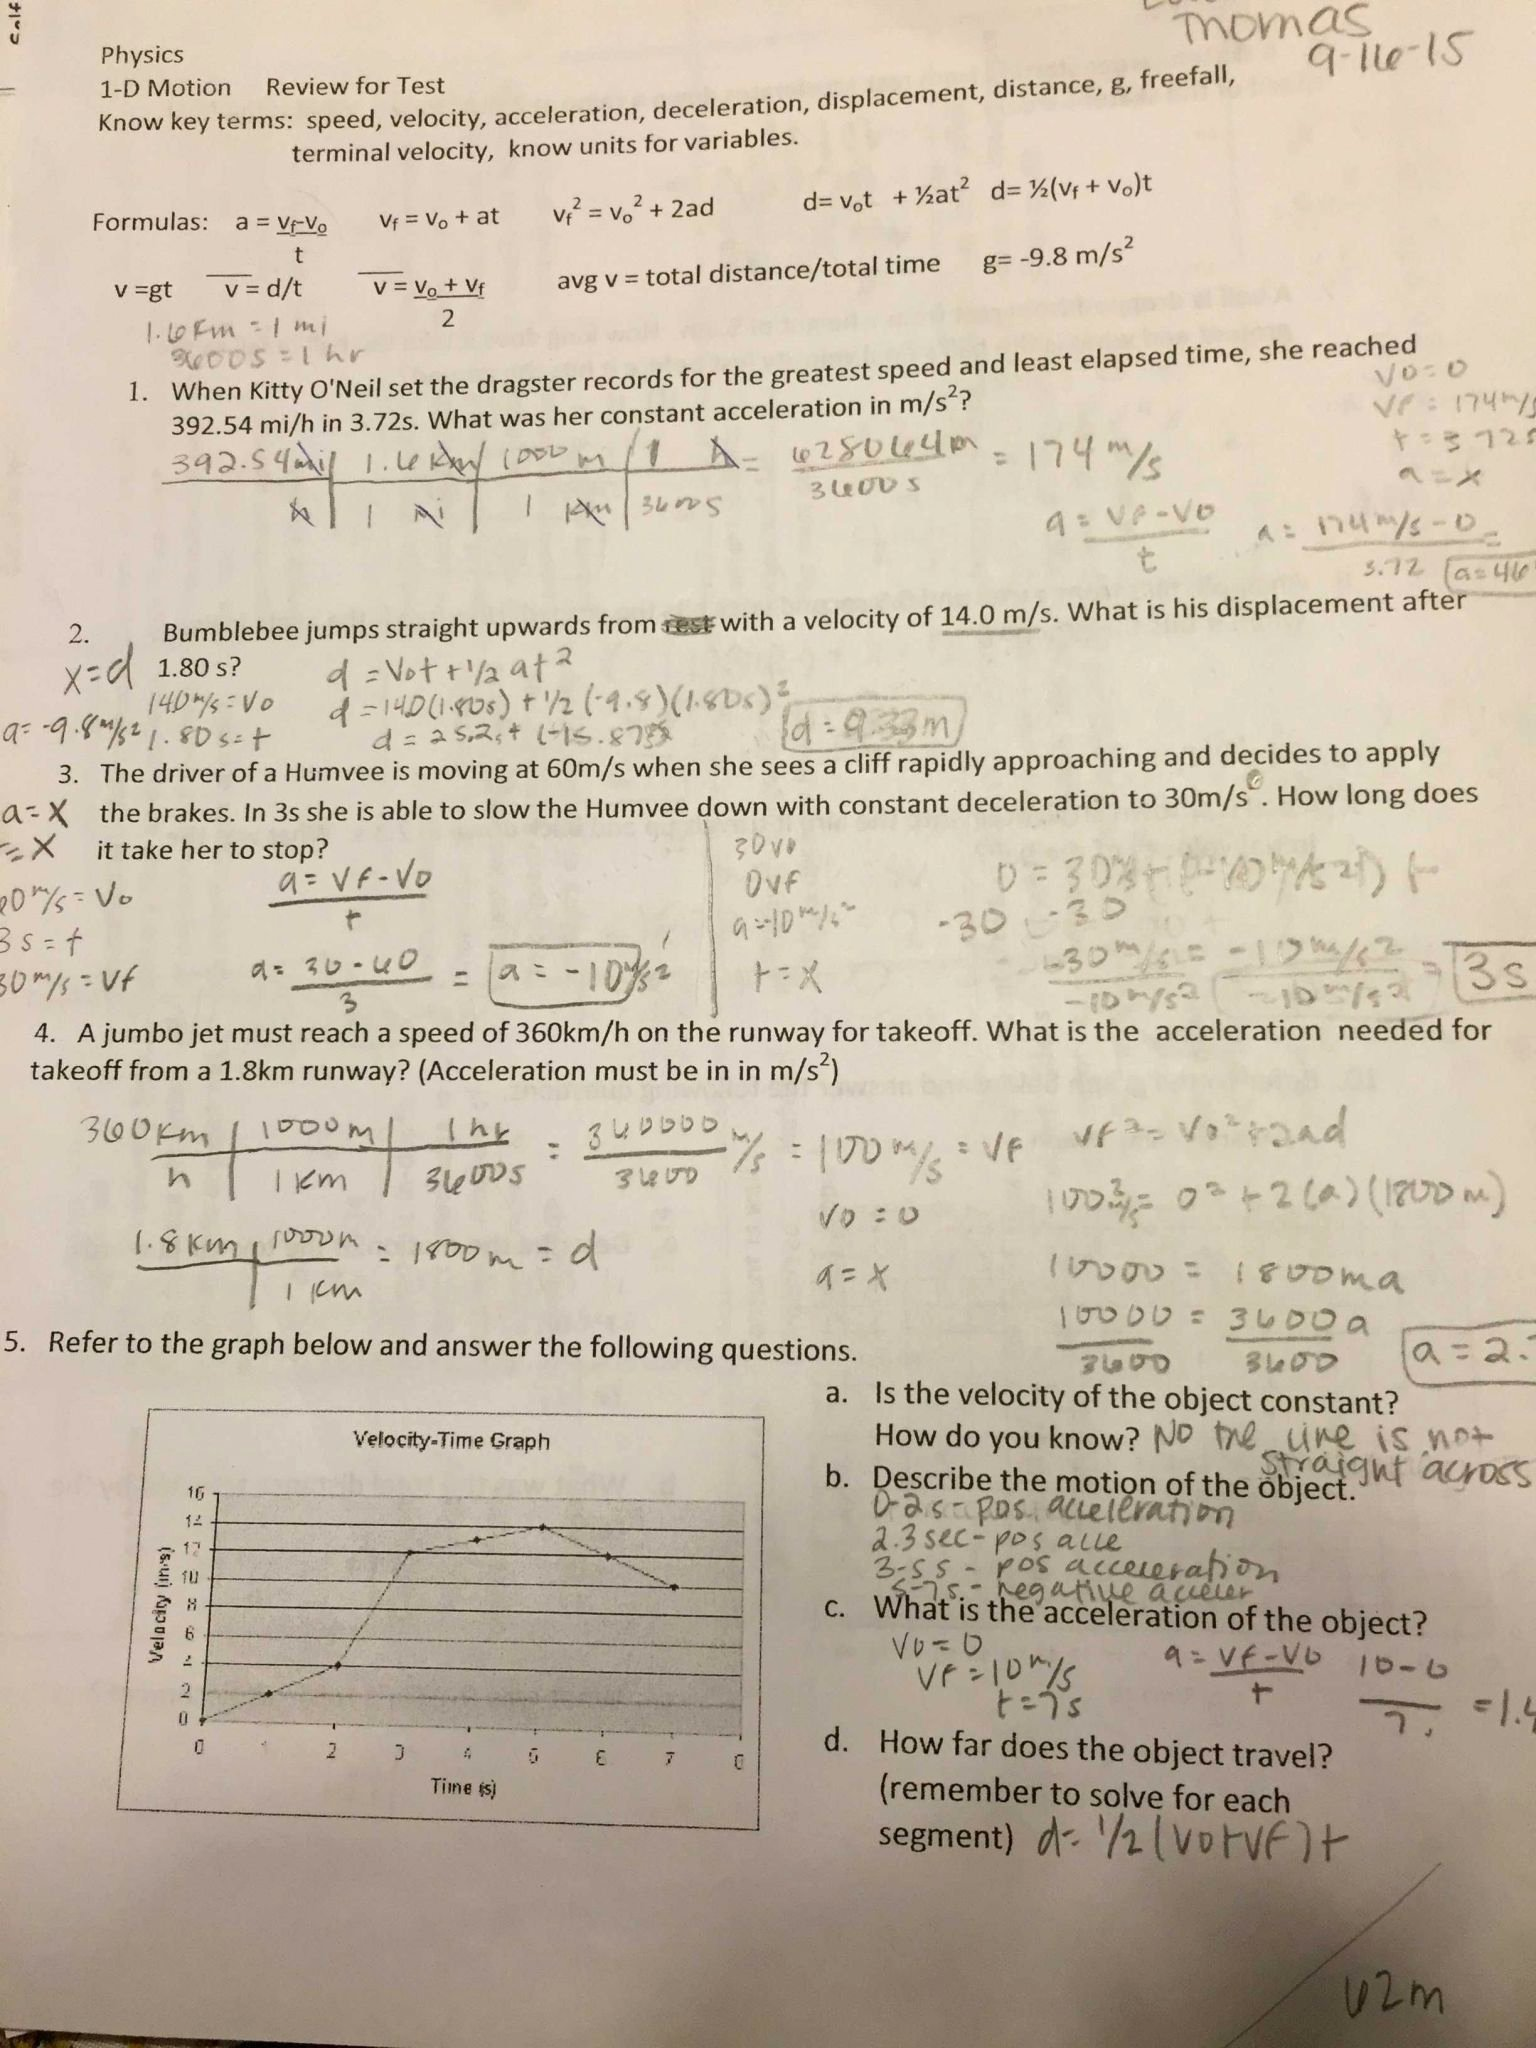 Acceleration Worksheet with Answers Best Of Displacement Velocity and Acceleration Worksheet Answers